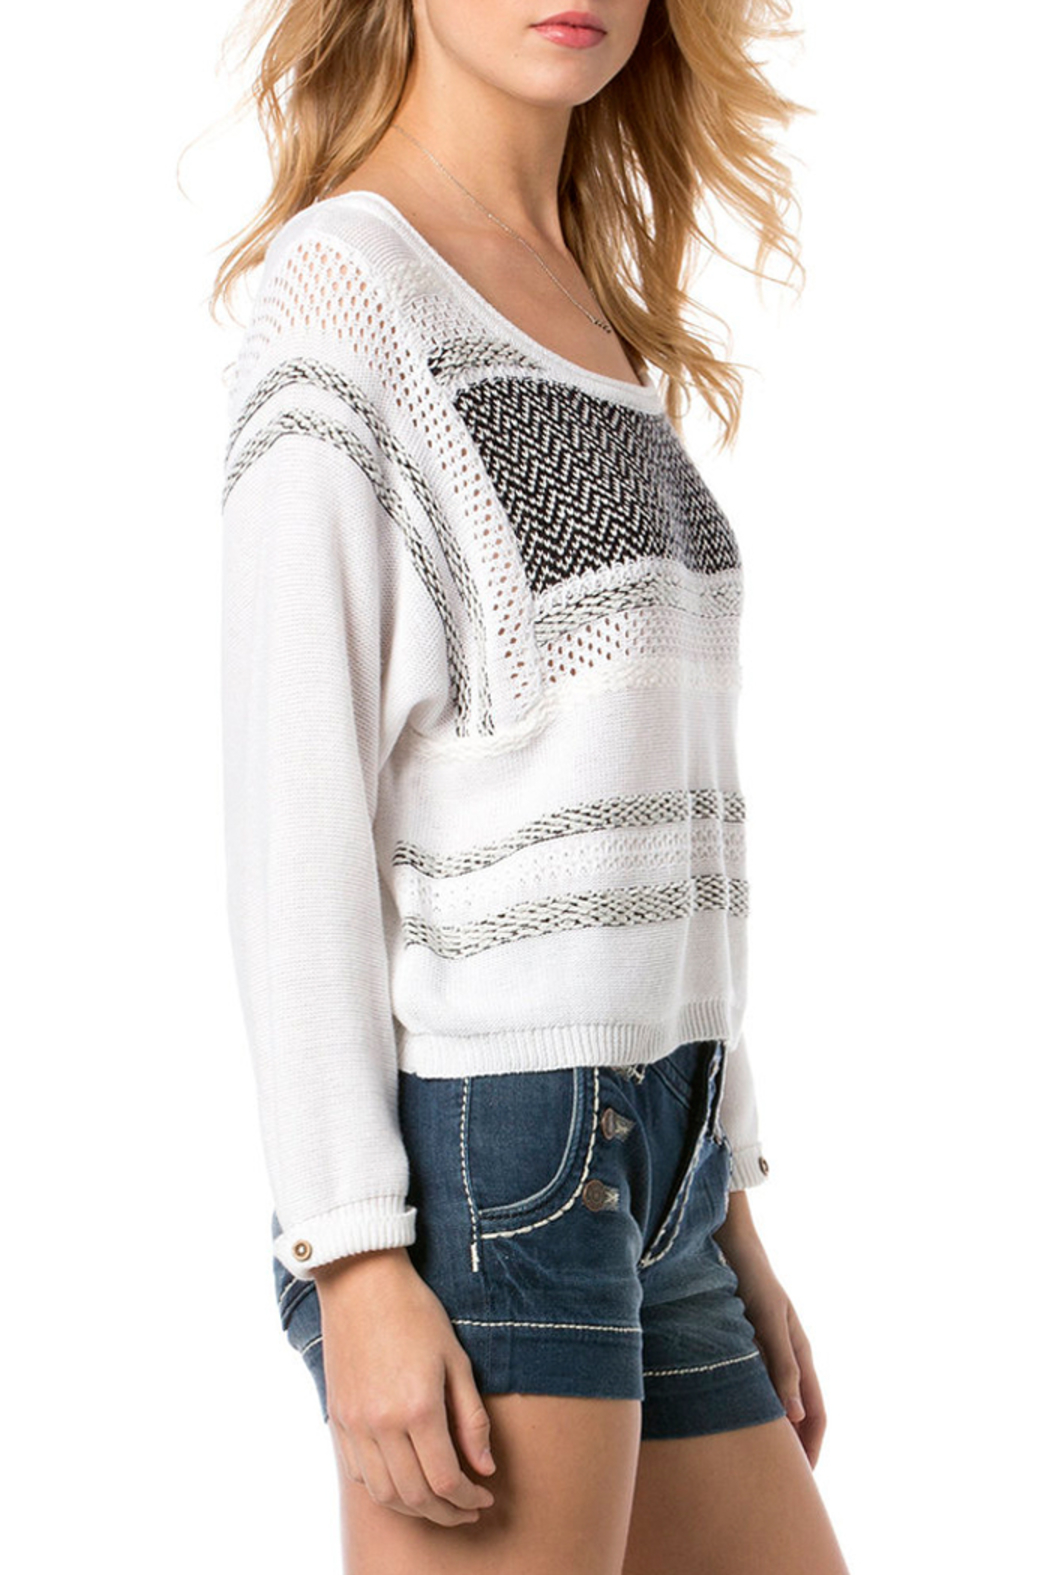 Miss Me White and Black Knit Sweater - Side Cropped Image